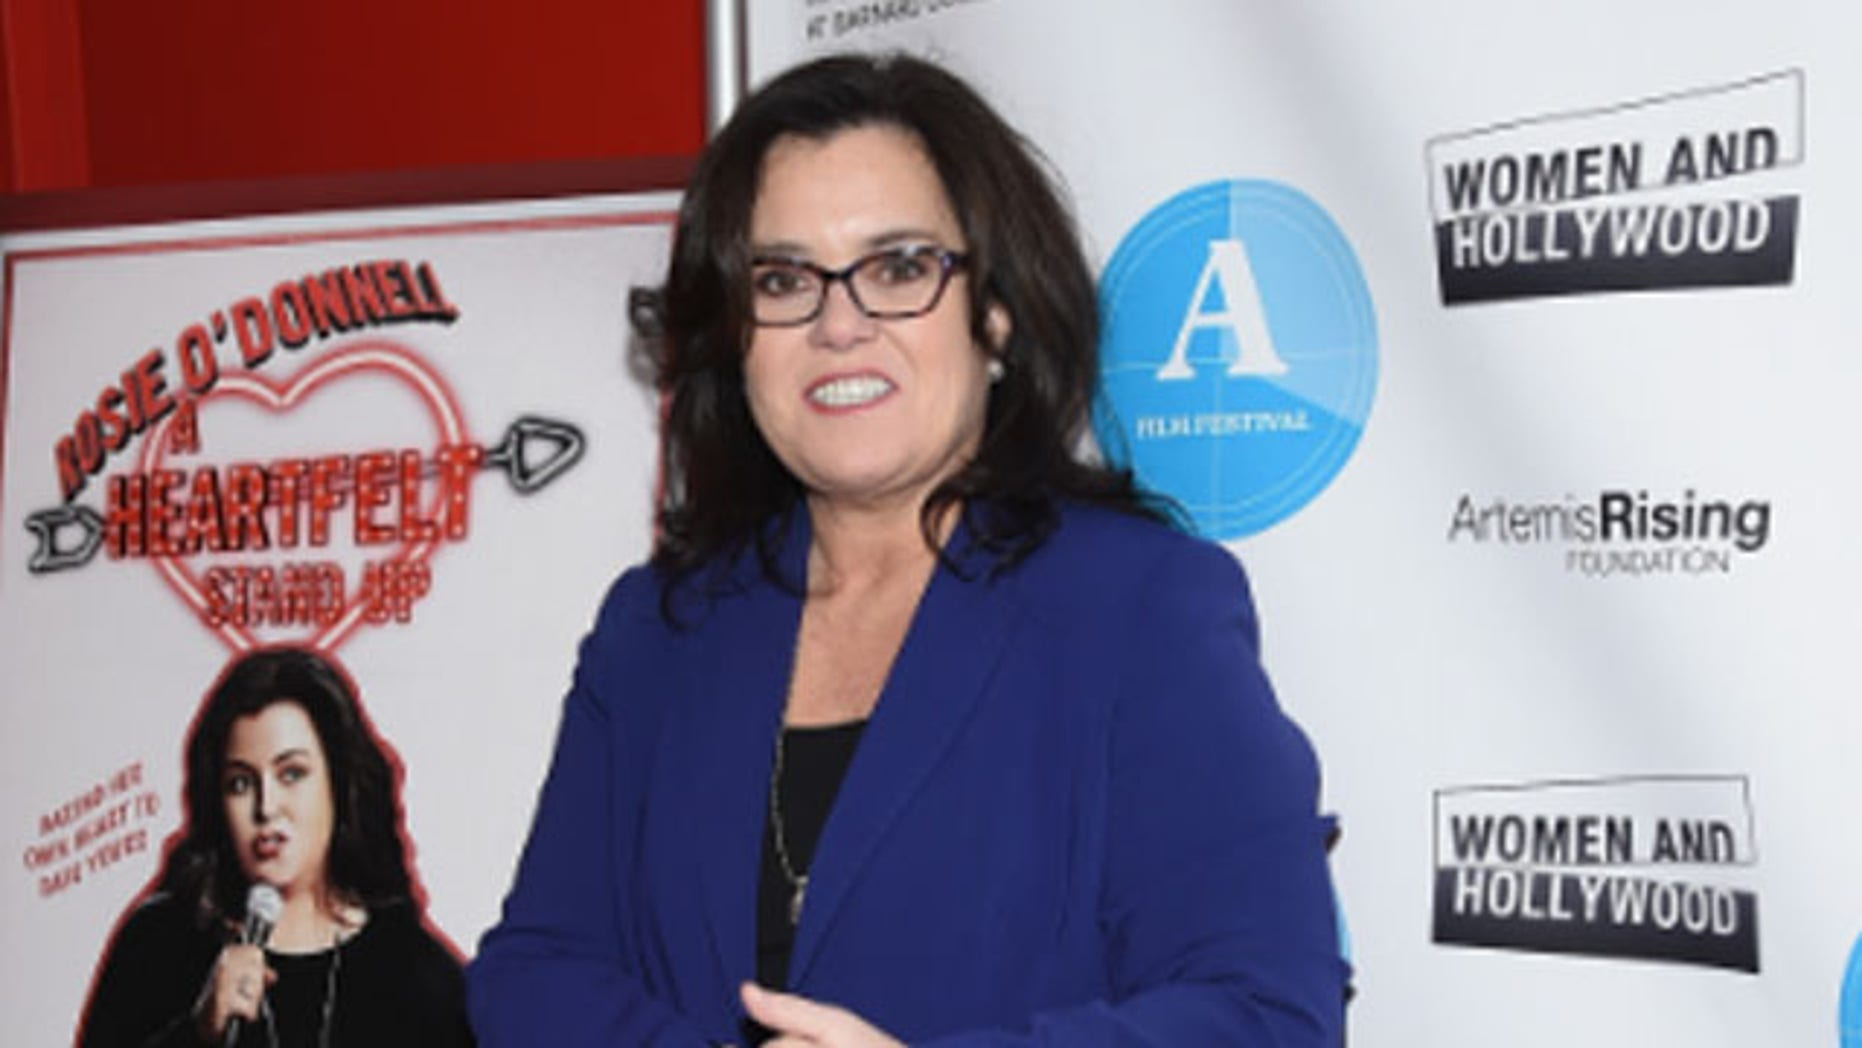 Feb 7. 2015. Rosie O'Donnell at the premiere of her HBO stand up show.